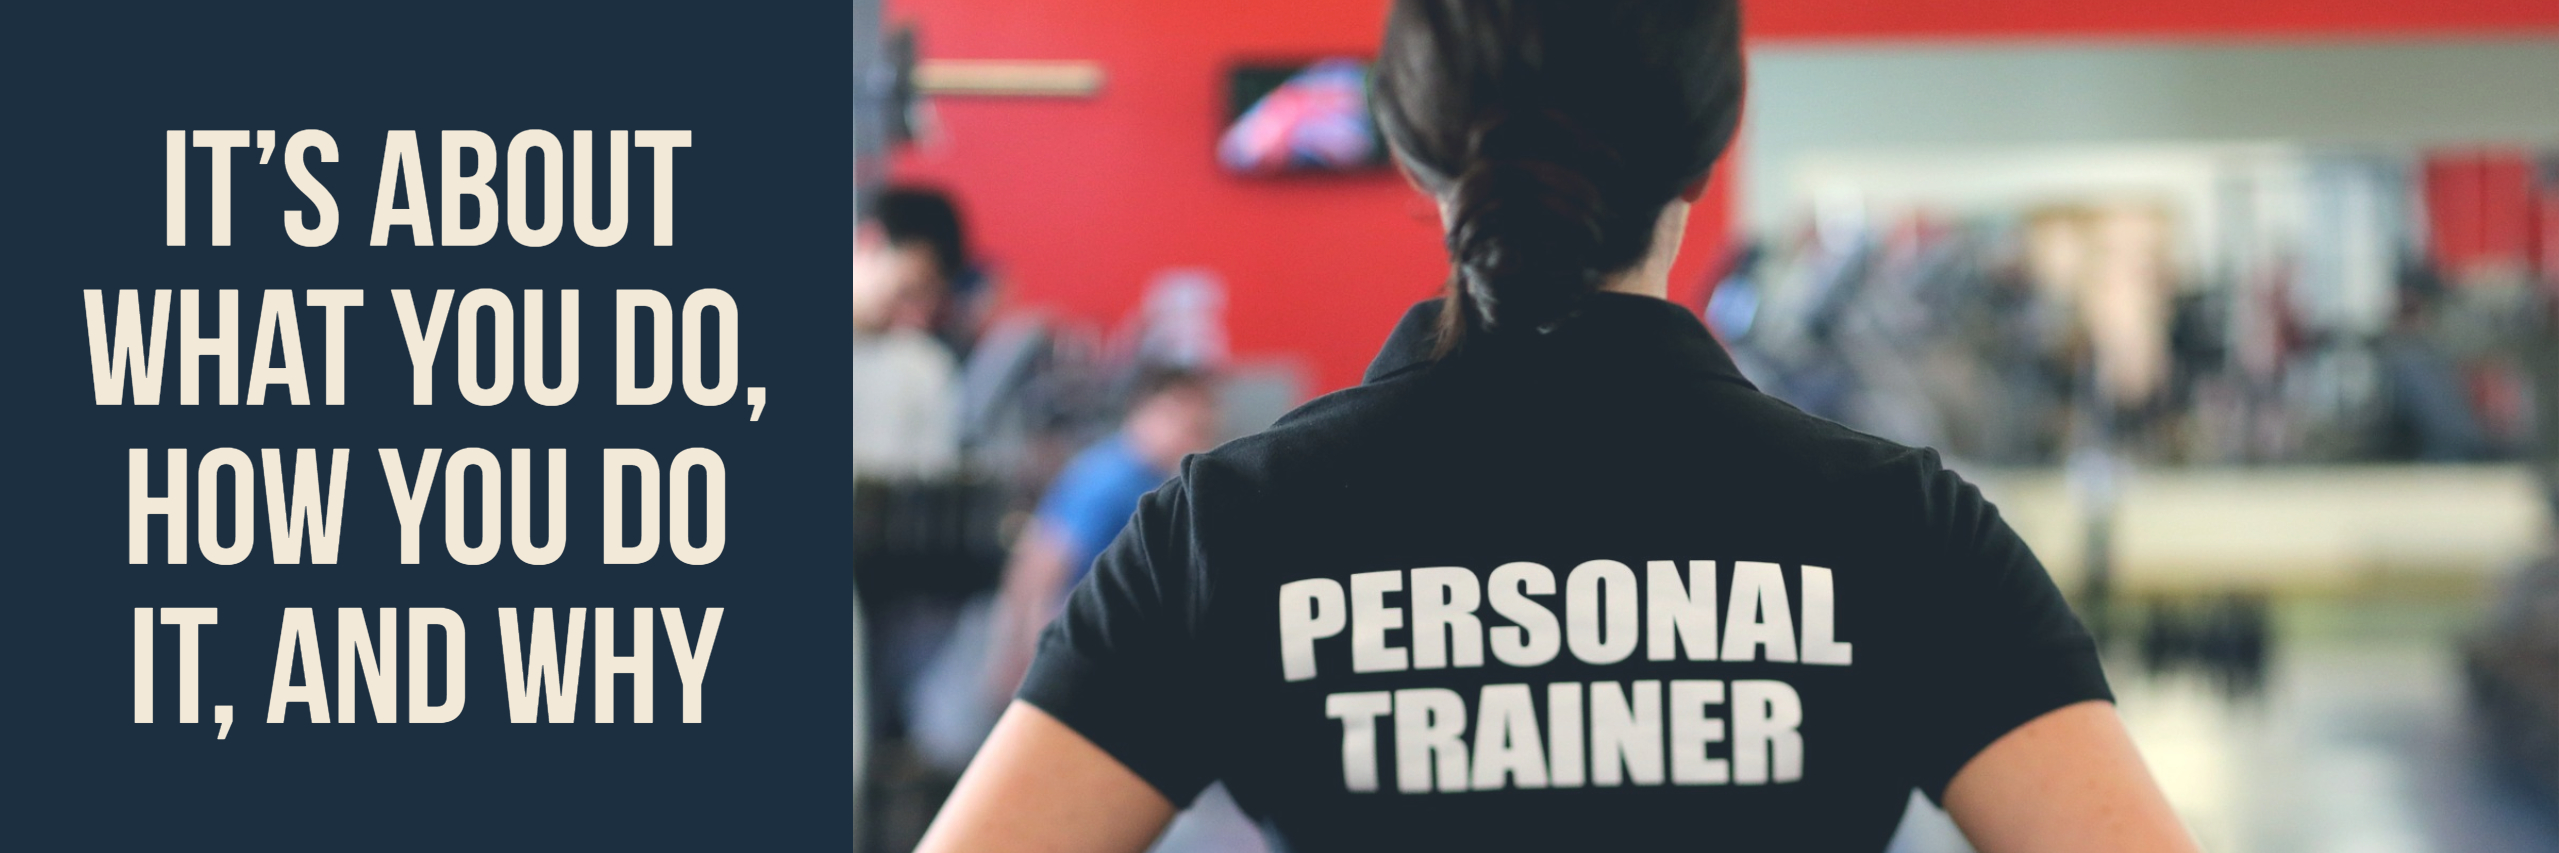 aapte personal trainer banner 1